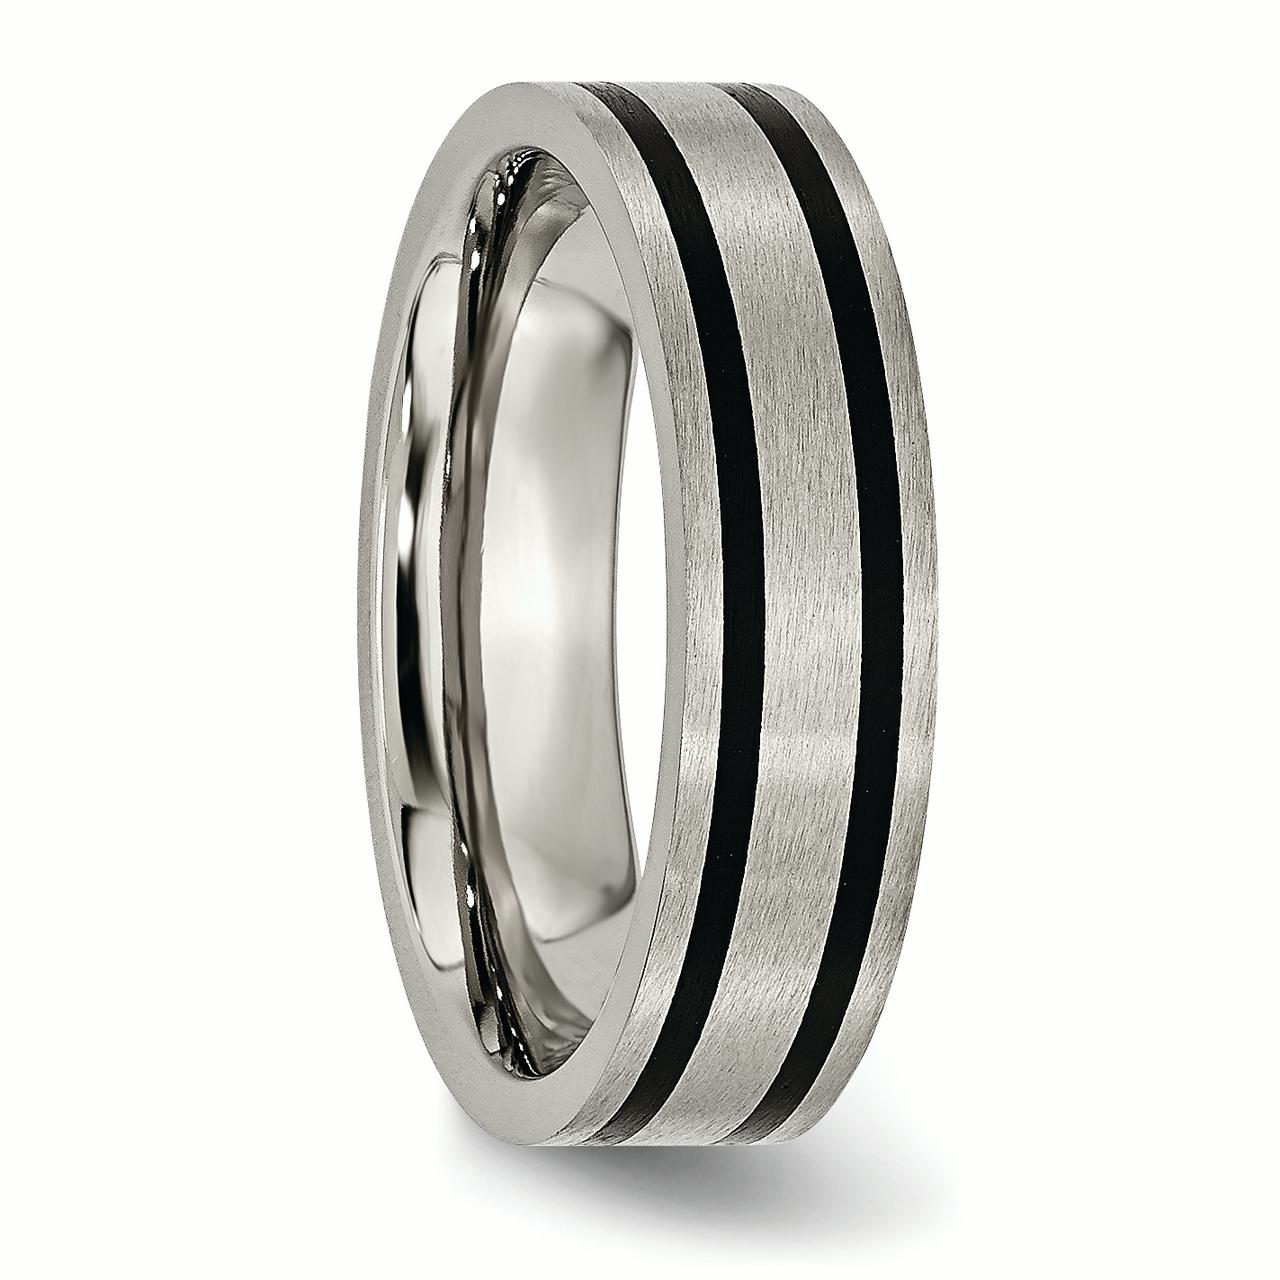 Titanium Brushed Enameled Flat 6mm Wedding Ring Band Size 7.00 Fashion Jewelry Gifts For Women For Her - image 5 de 6